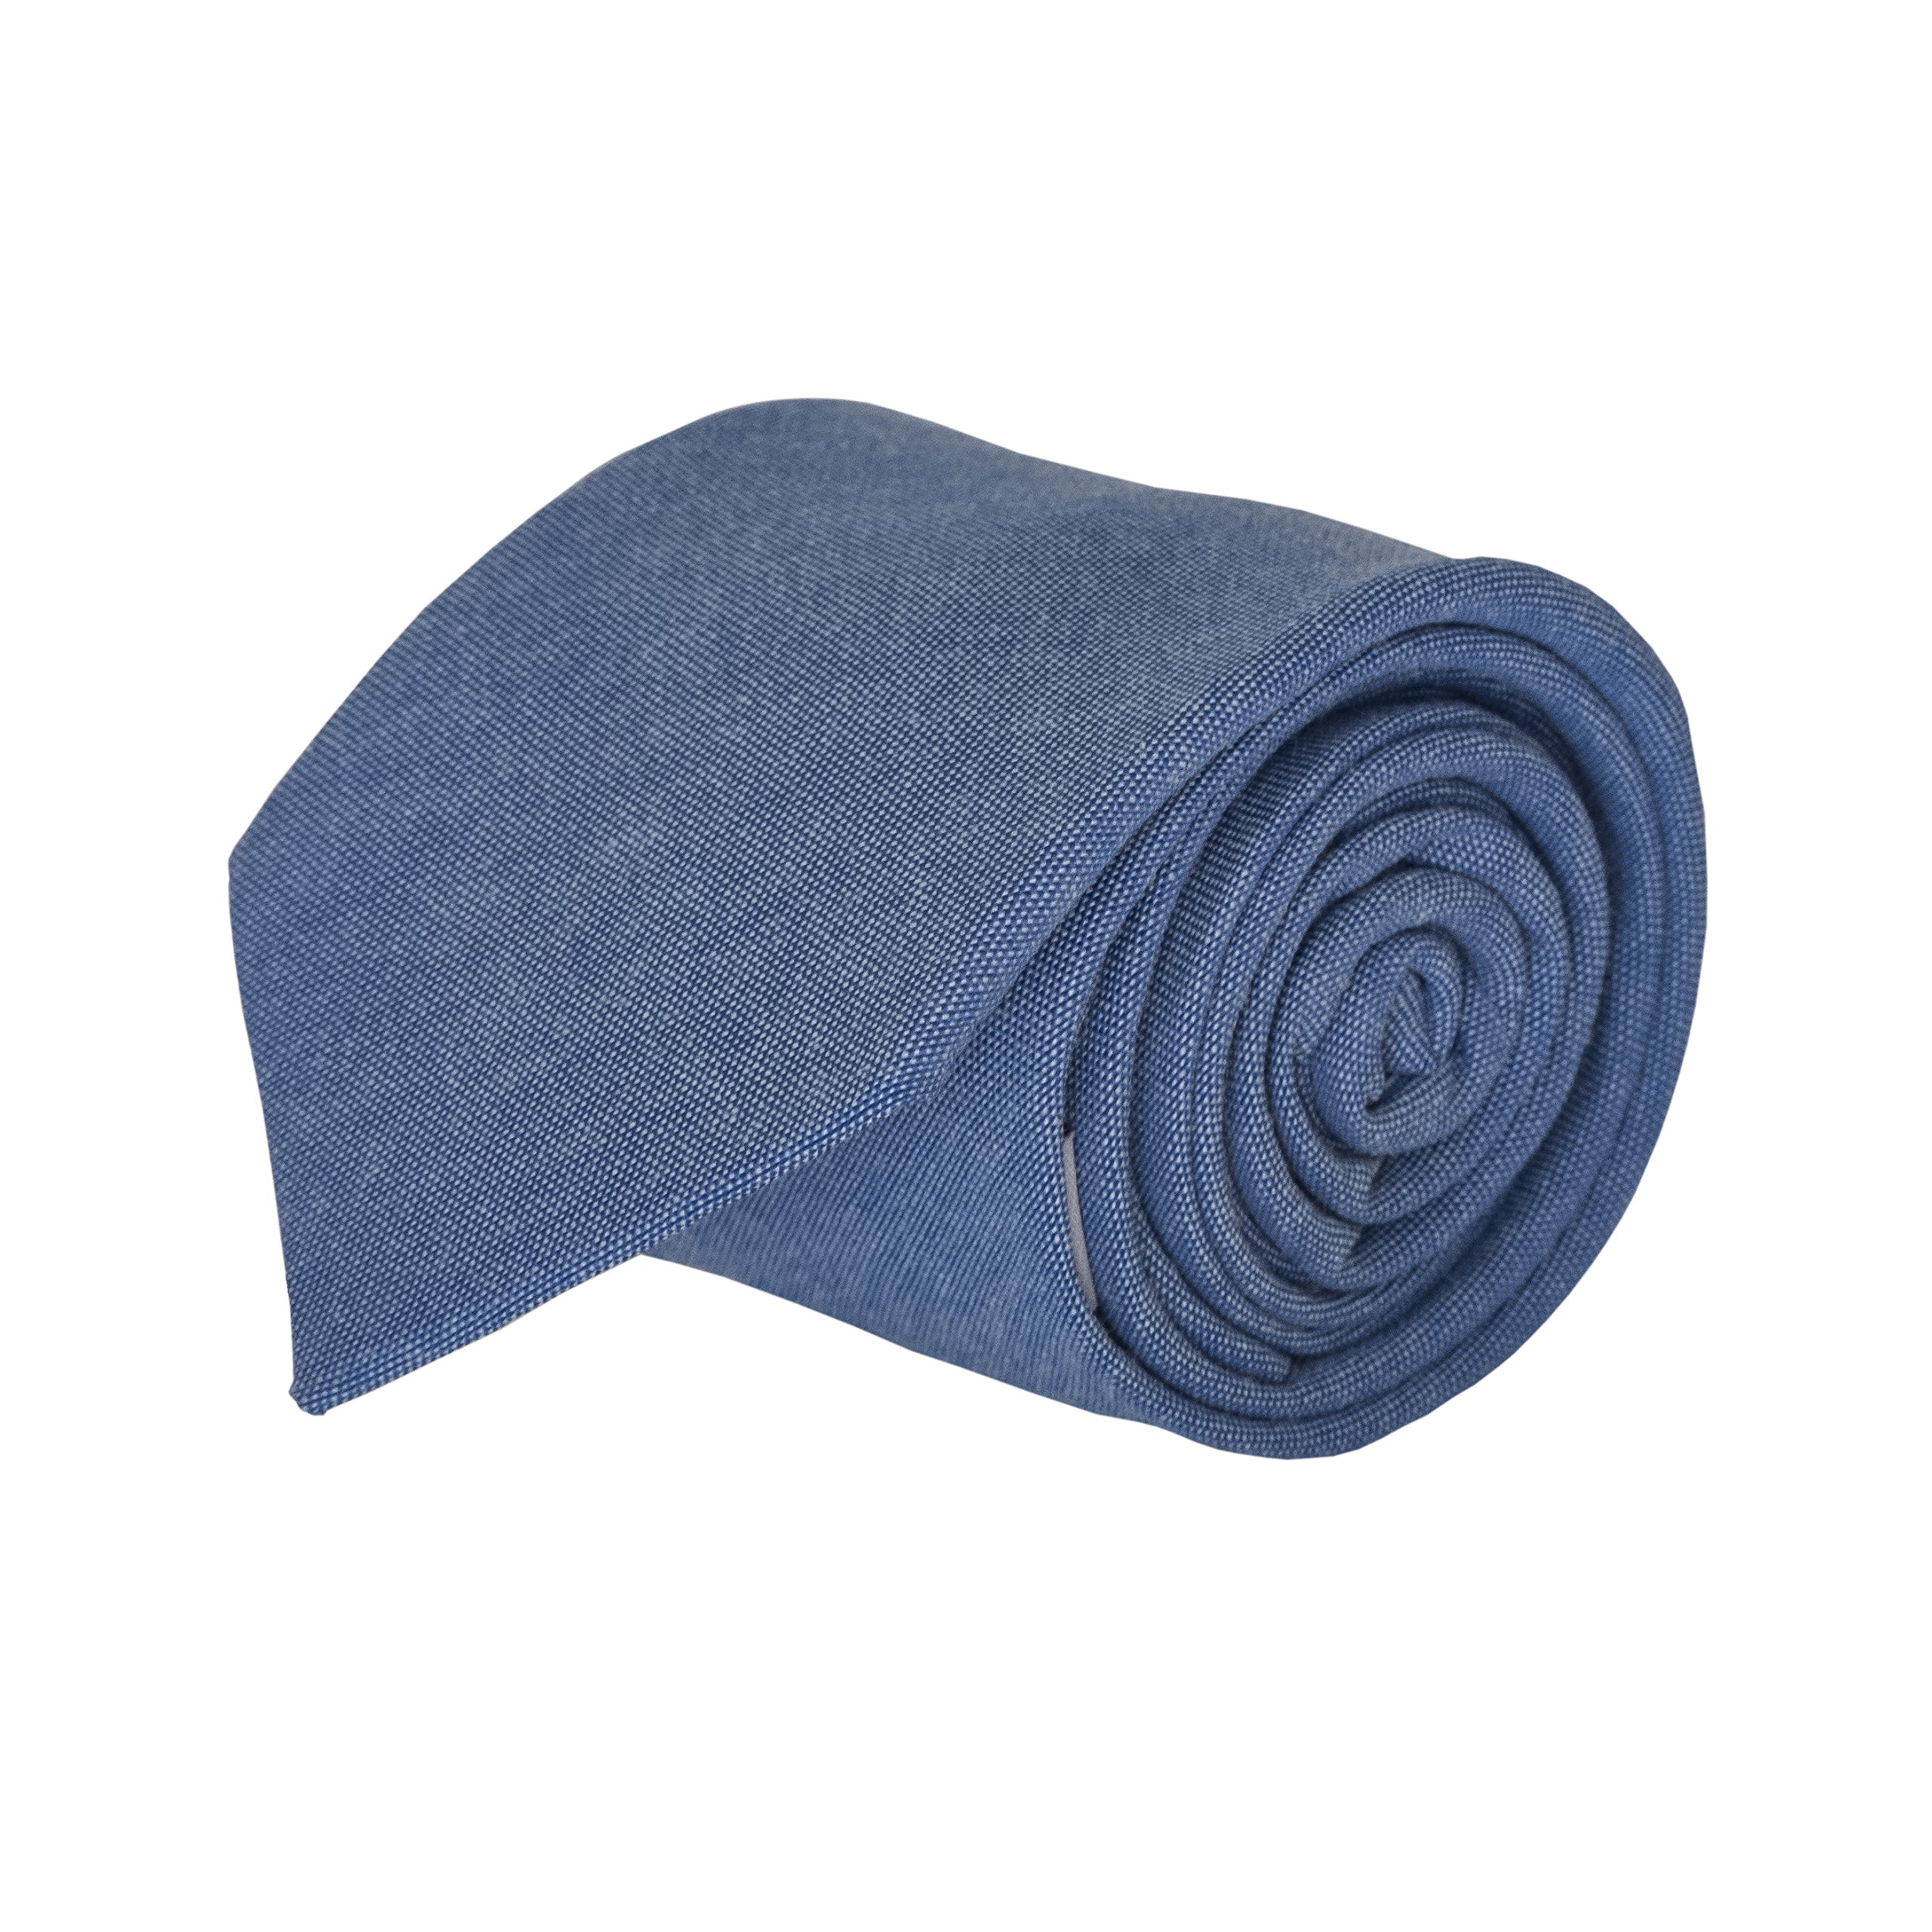 Luther Pike Mens Cotton Chambray Skinny Tie Neckties for Men - 2.75 inches Warm Blue Ties For Men